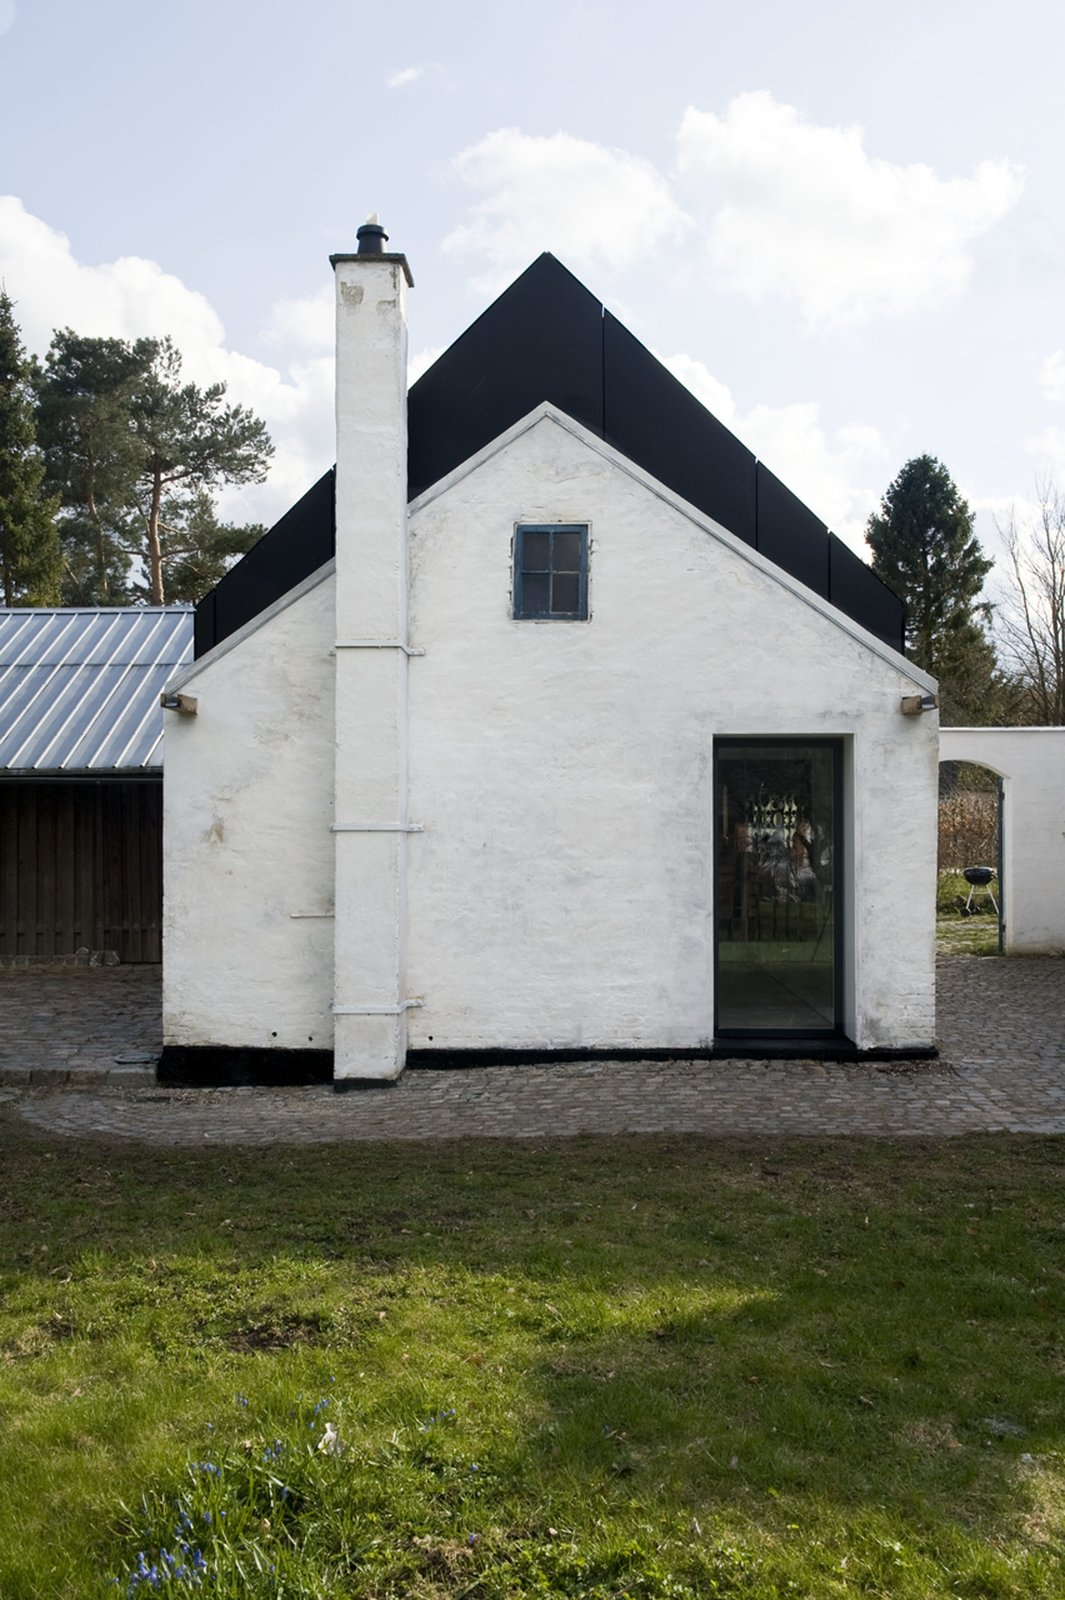 Articles about danish farmhouse turned contemporary art studio on Dwell.com